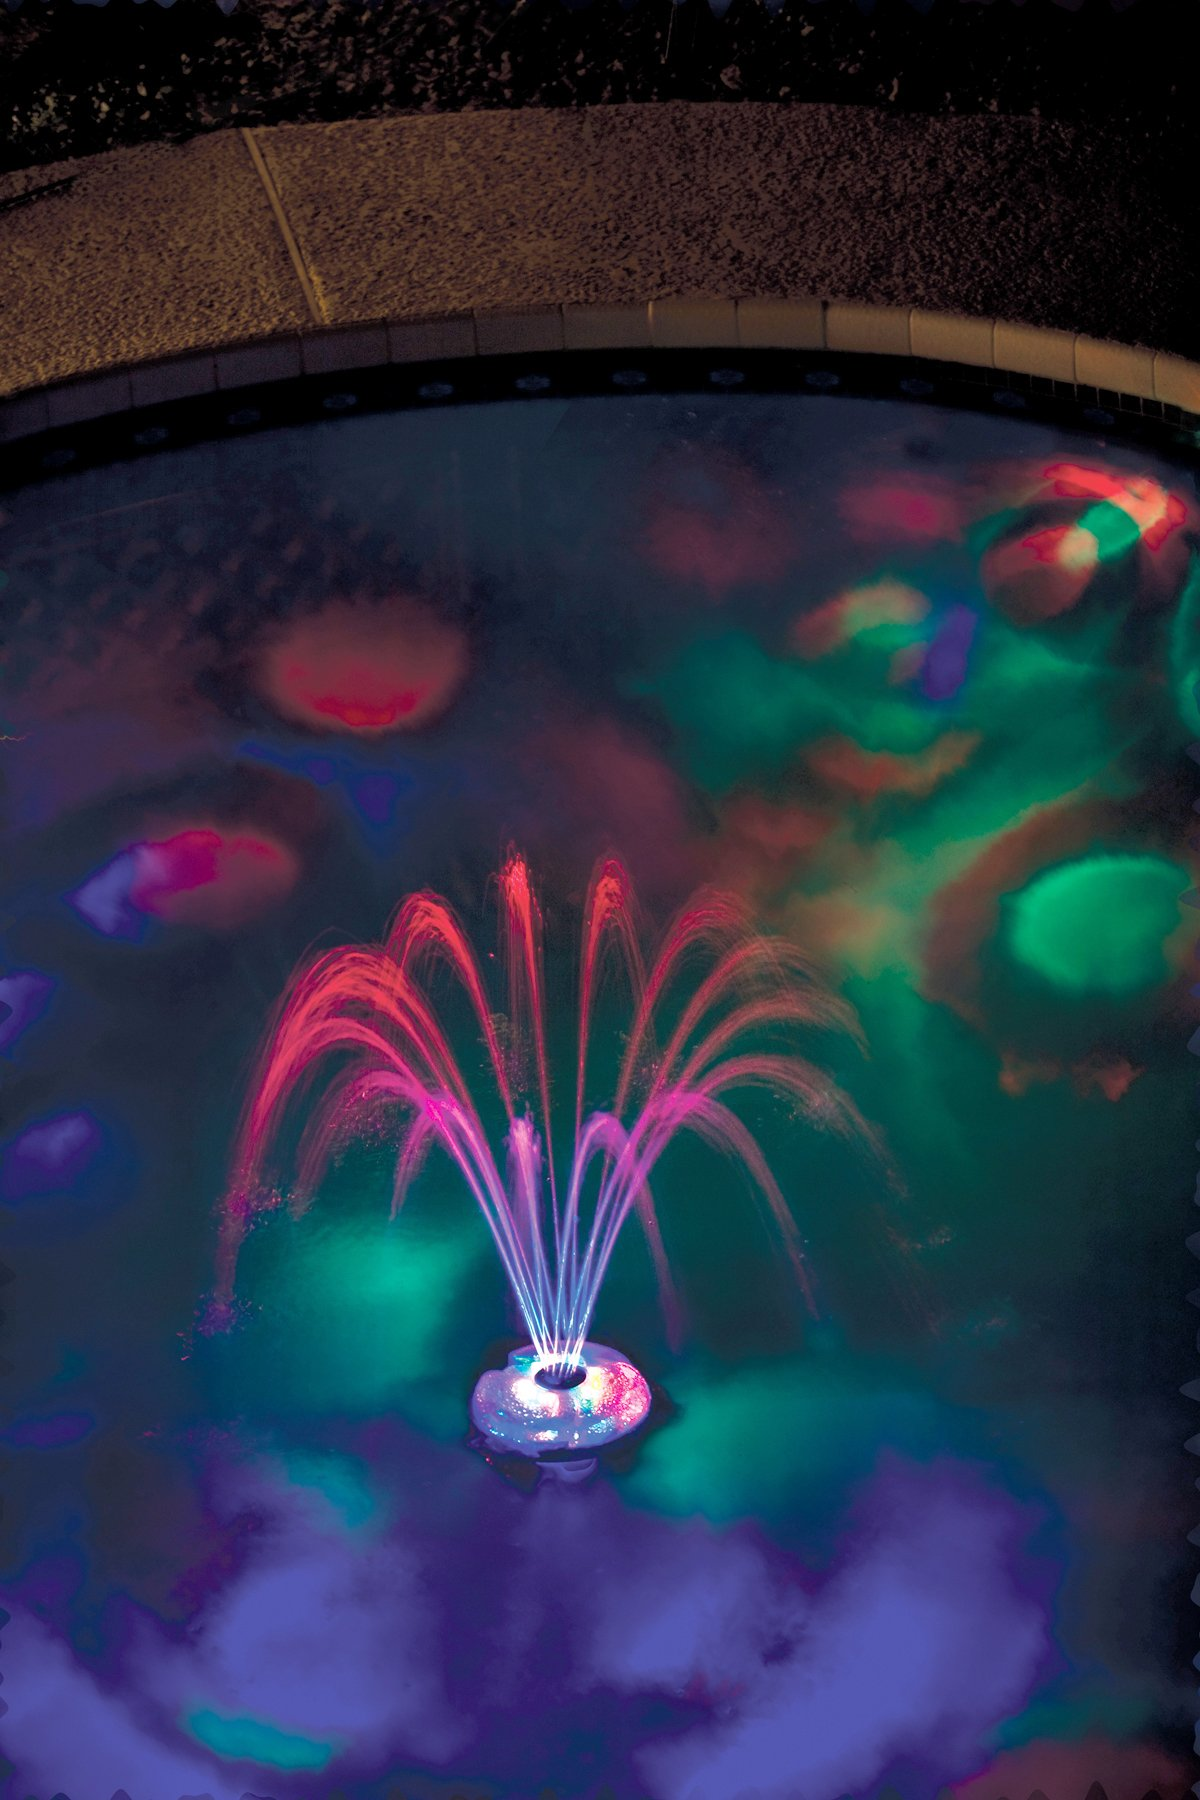 GAME 3567 Underwater Light Show & Fountain, 6.9 x 6.9 x 4.4 inches, Blue